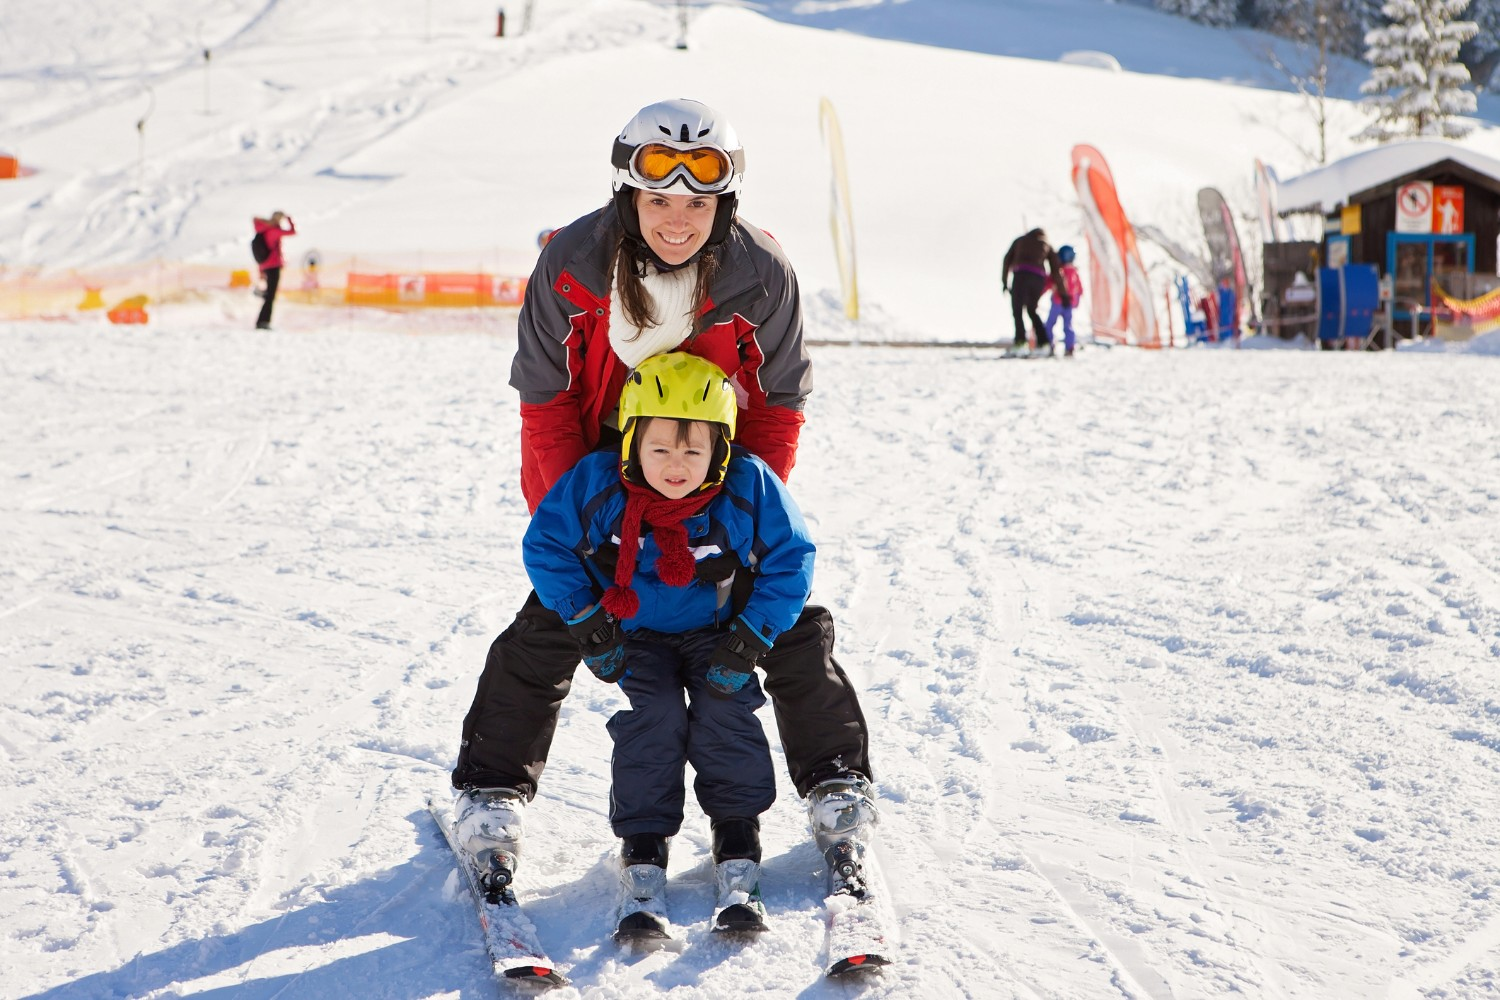 mom and young son skiing together